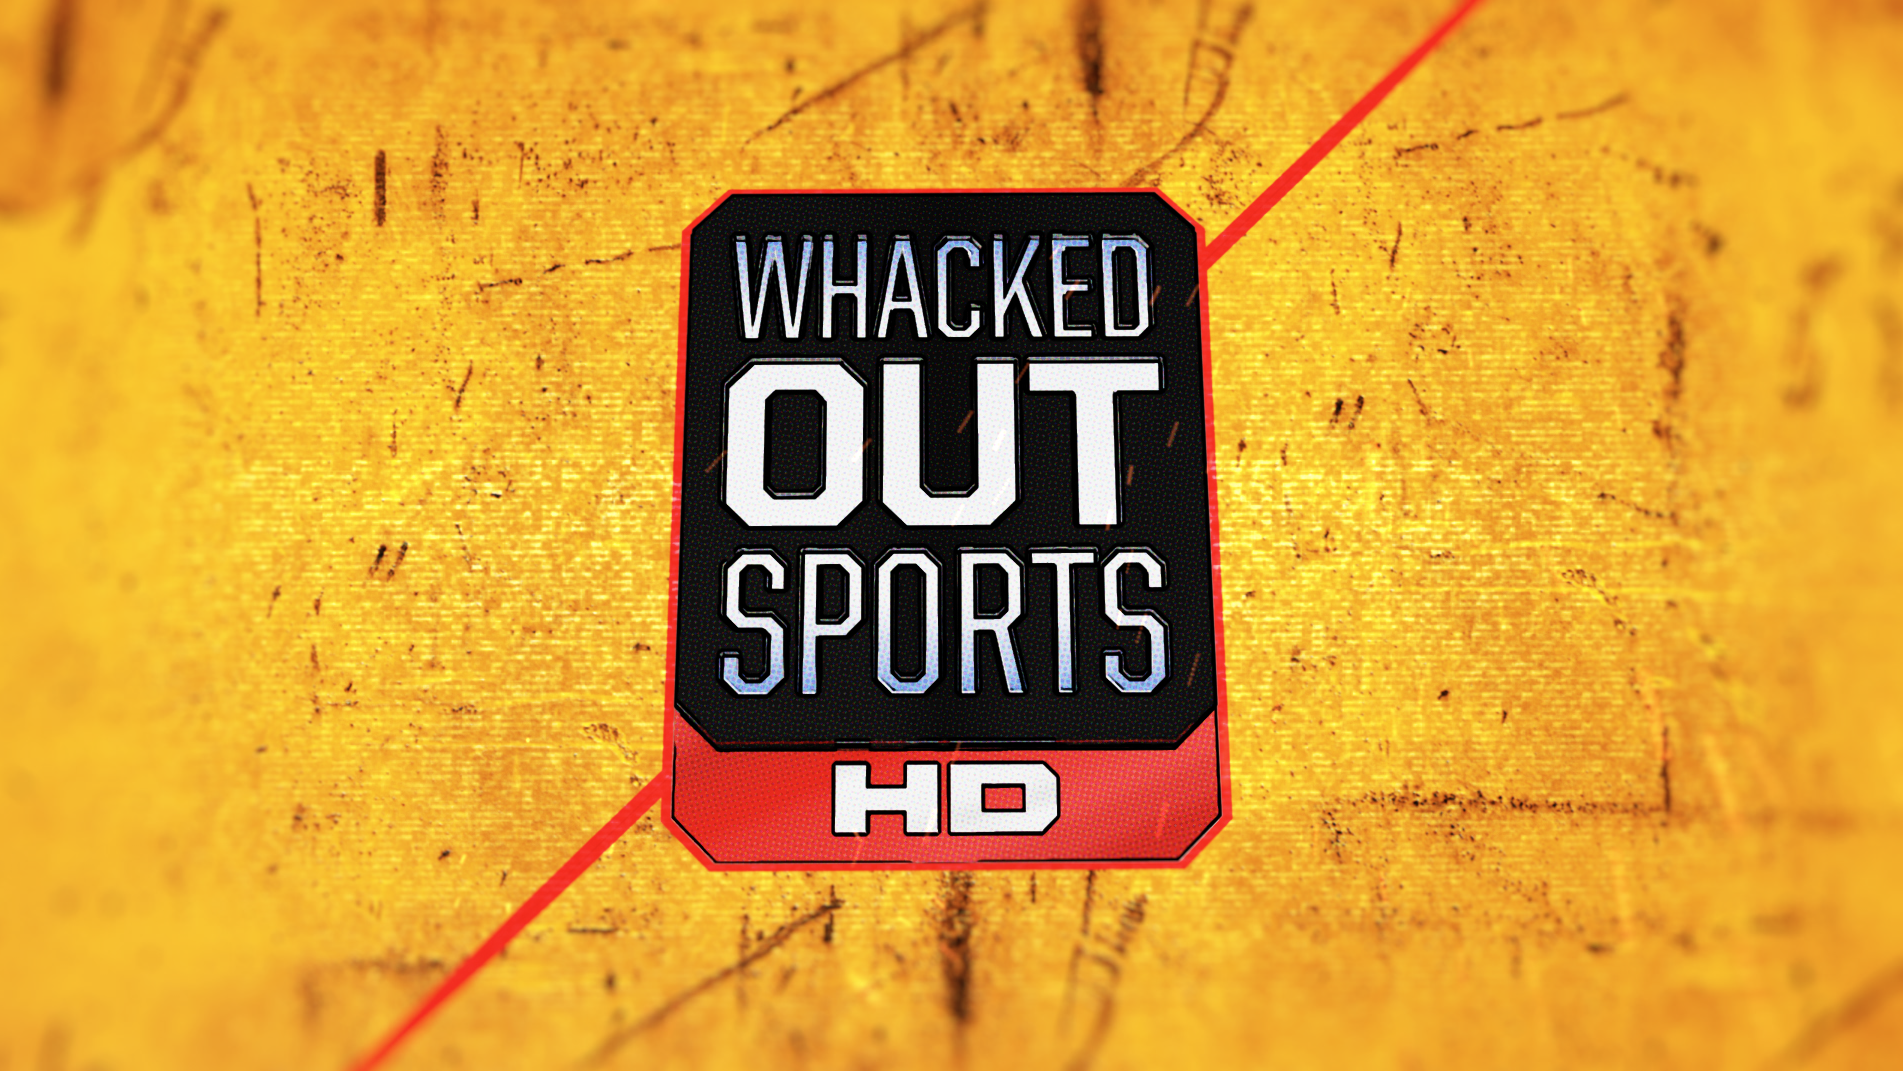 Copy of Whacked Out Sports HD